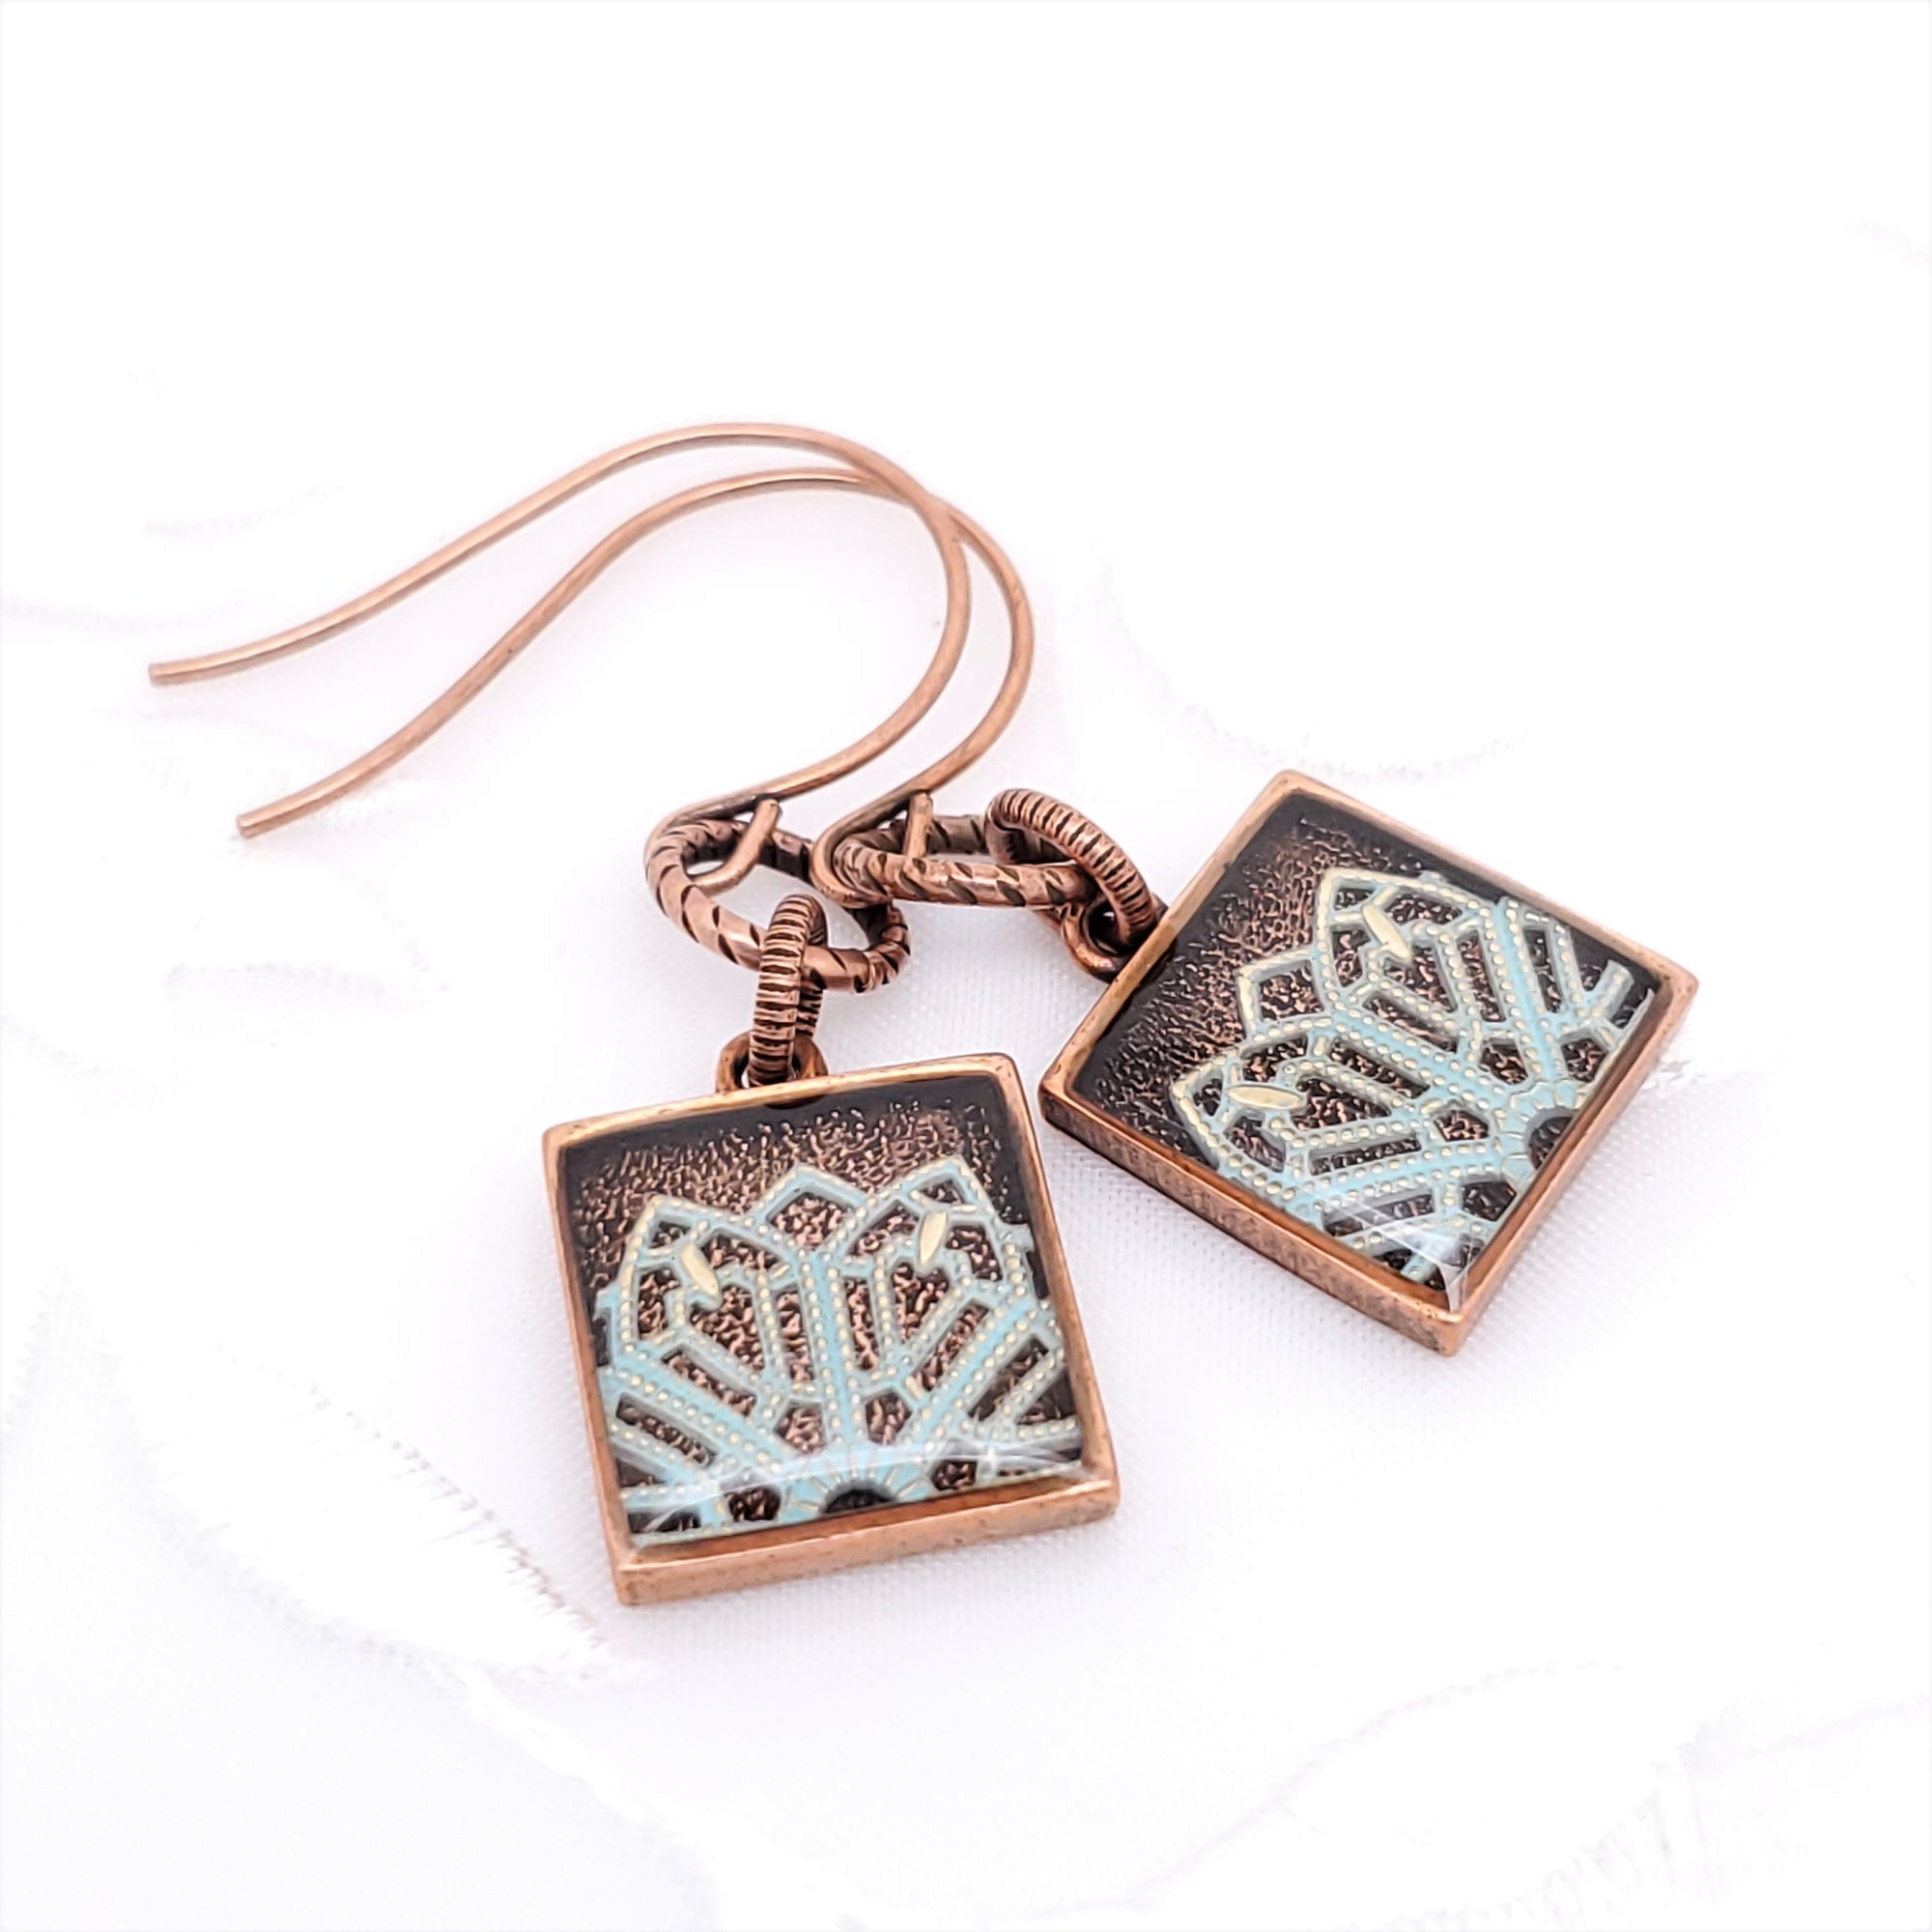 Antique Copper Square Earrings with Light Blue Filigree